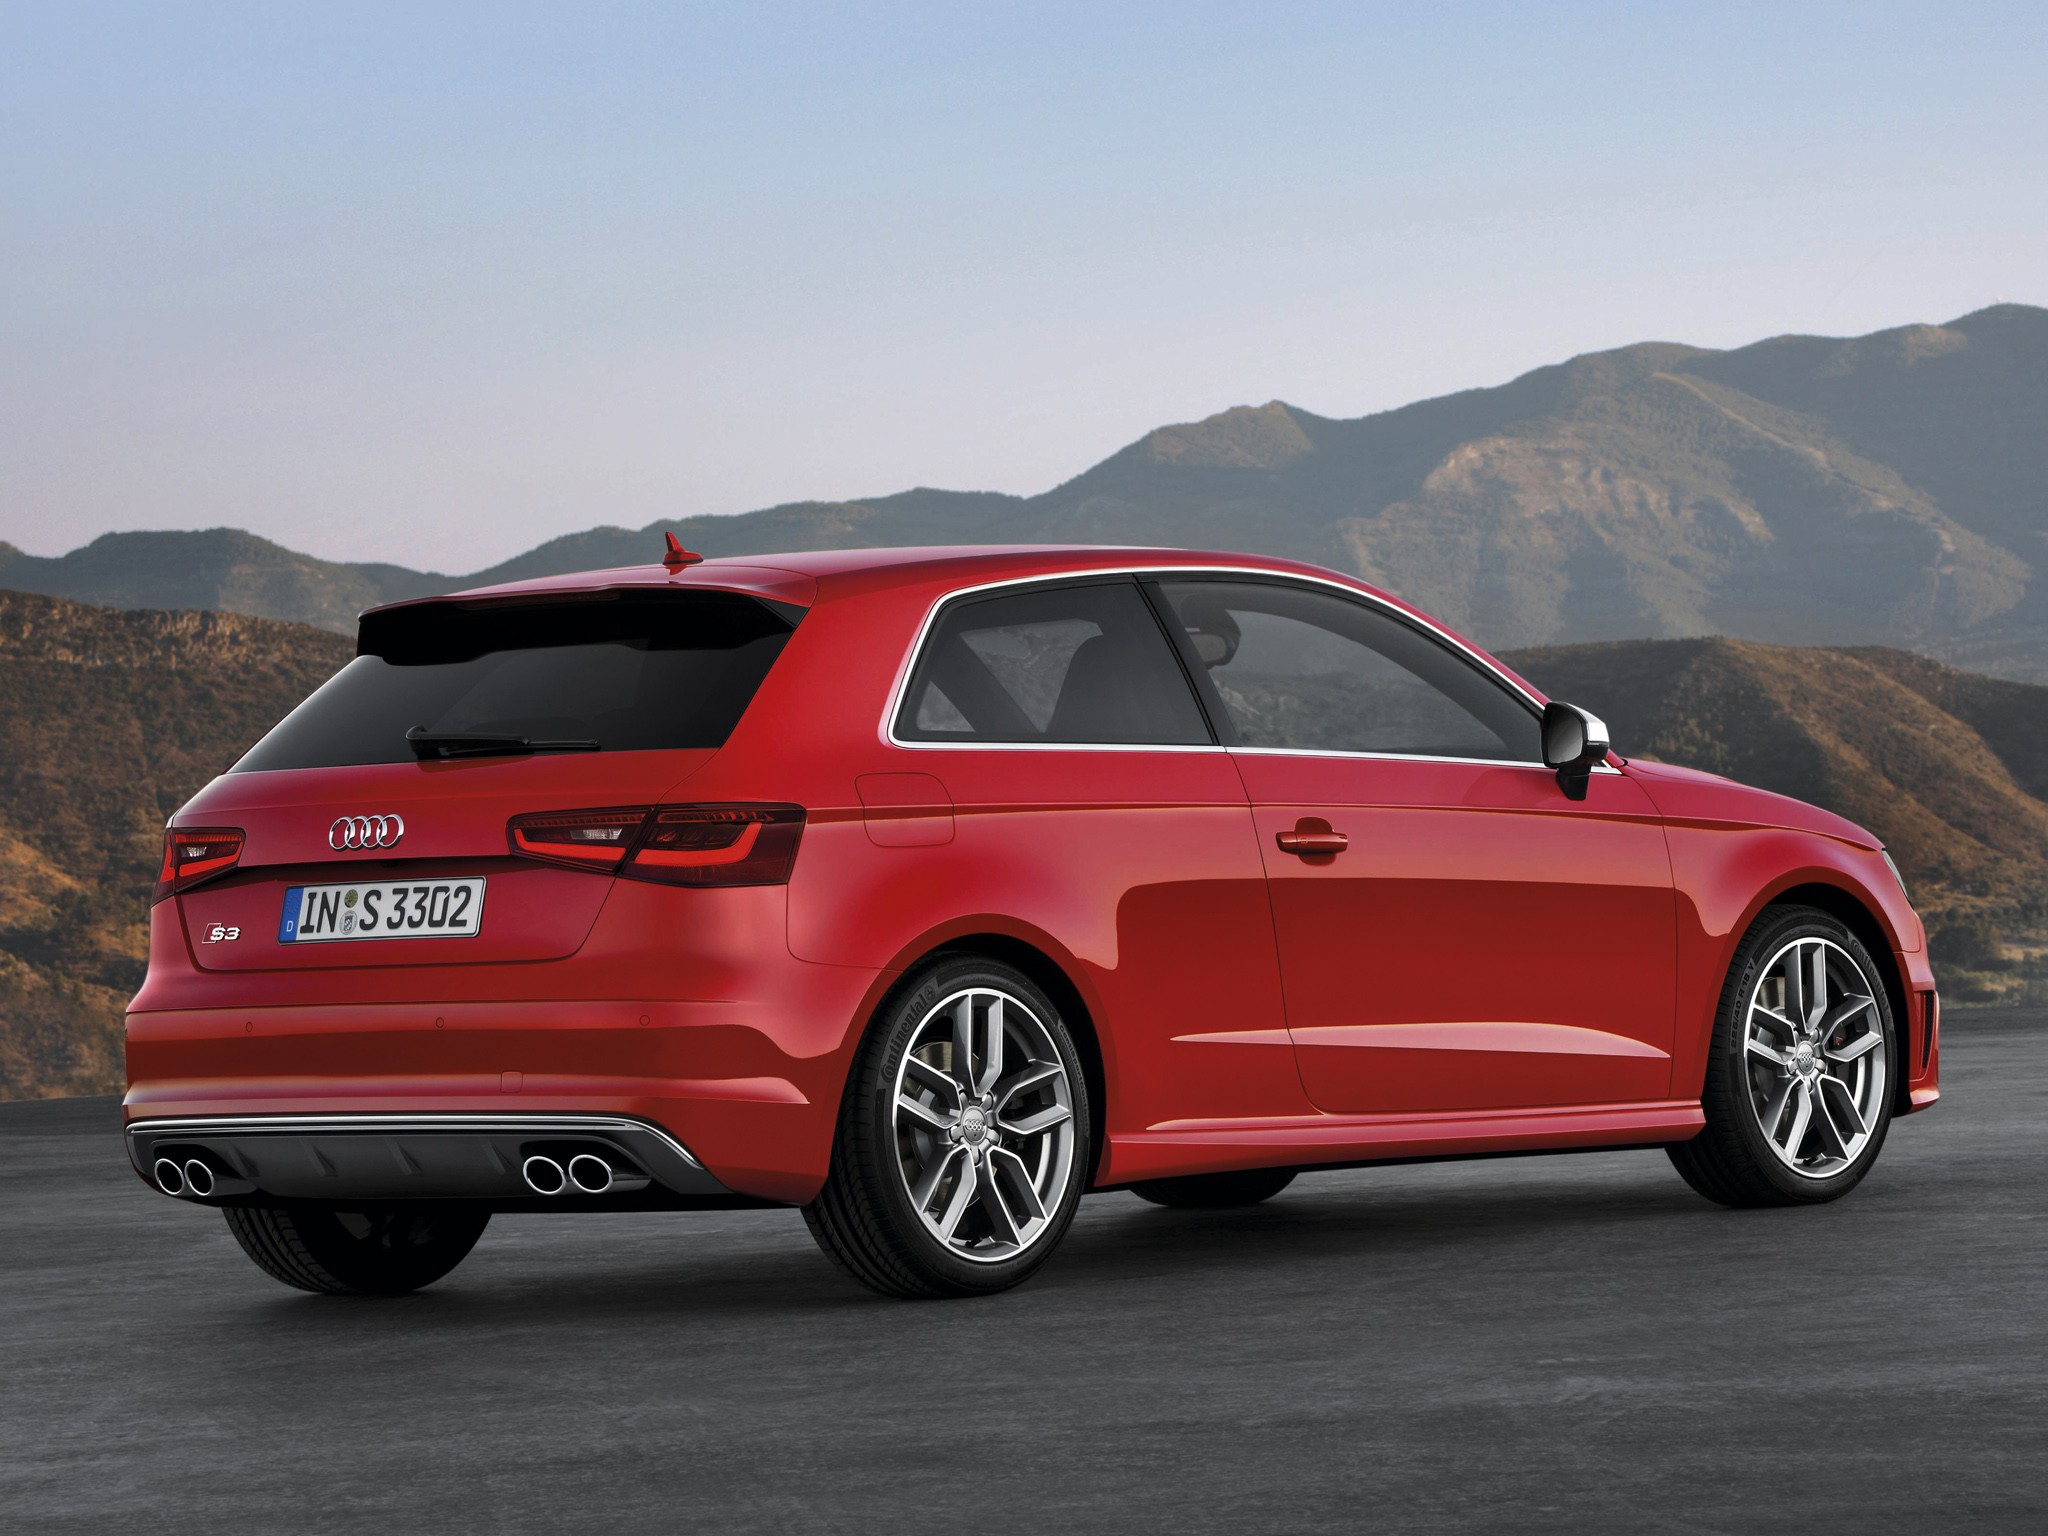 audi s3 specs 2013 2014 2015 2016 autoevolution. Black Bedroom Furniture Sets. Home Design Ideas